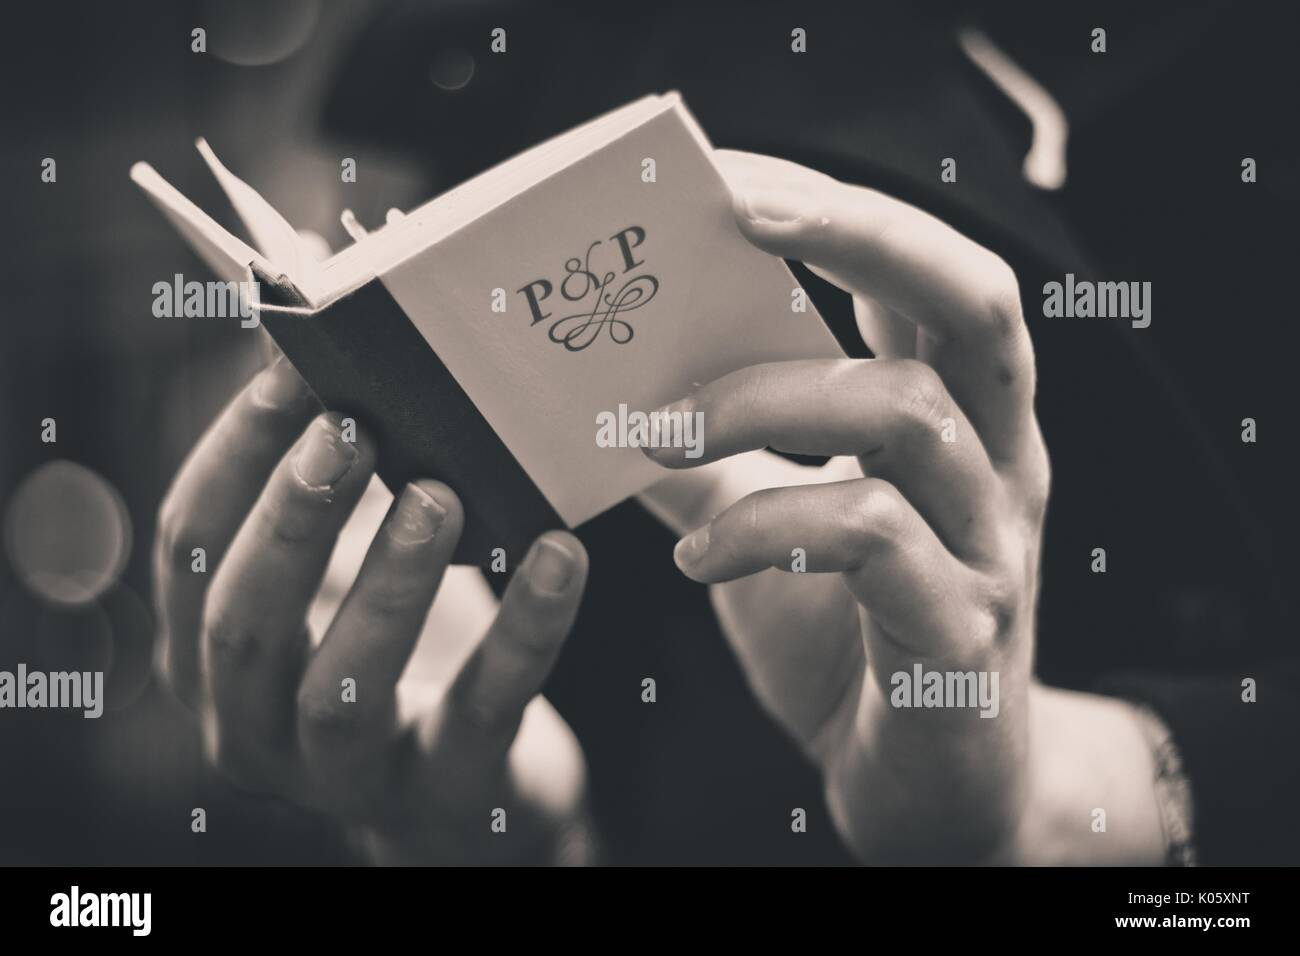 Close up of the hands of a college student holding and reading a miniature book in the Special Collections department of a University library, the book labeled 'P and P', for Pride and Prejudice, 2016. - Stock Image